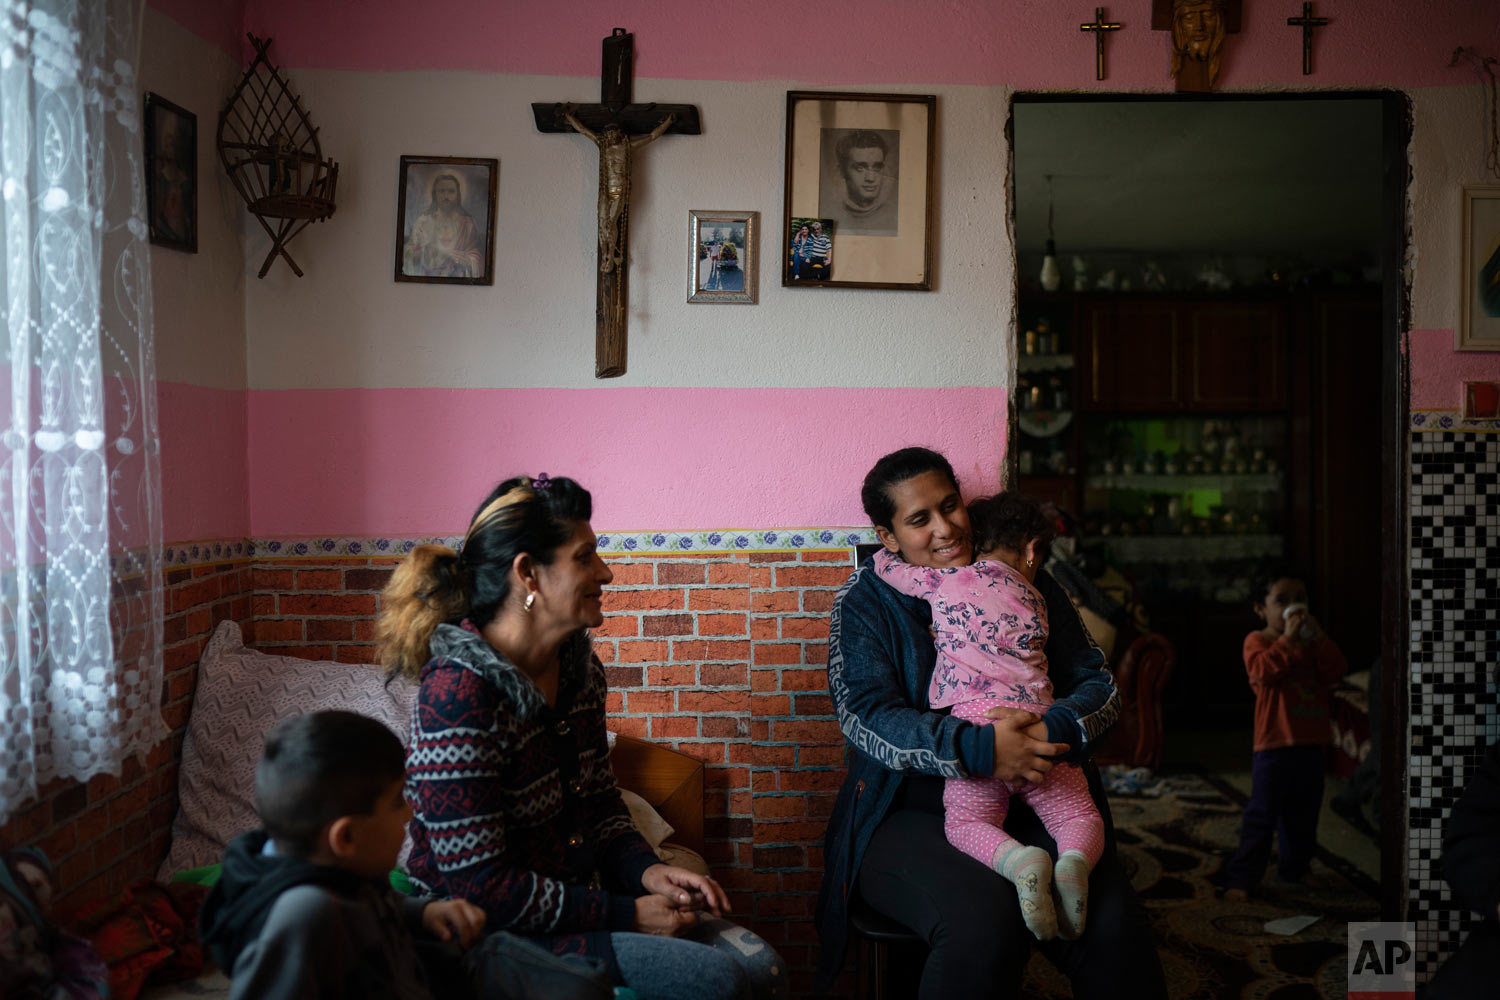 Monika Krcova, center left, sits with her daughter Ivana and her grandchildren in their house on Nov. 14, 2018, in Podhorany village, near Kezmarok, Slovakia. Krcova is no longer afraid of her local hospital since she isn't planning to have more children, but worries about her daughter Ivana, who says she also was slapped by nurses when she previously gave birth and is now pregnant. (AP Photo/Felipe Dana)